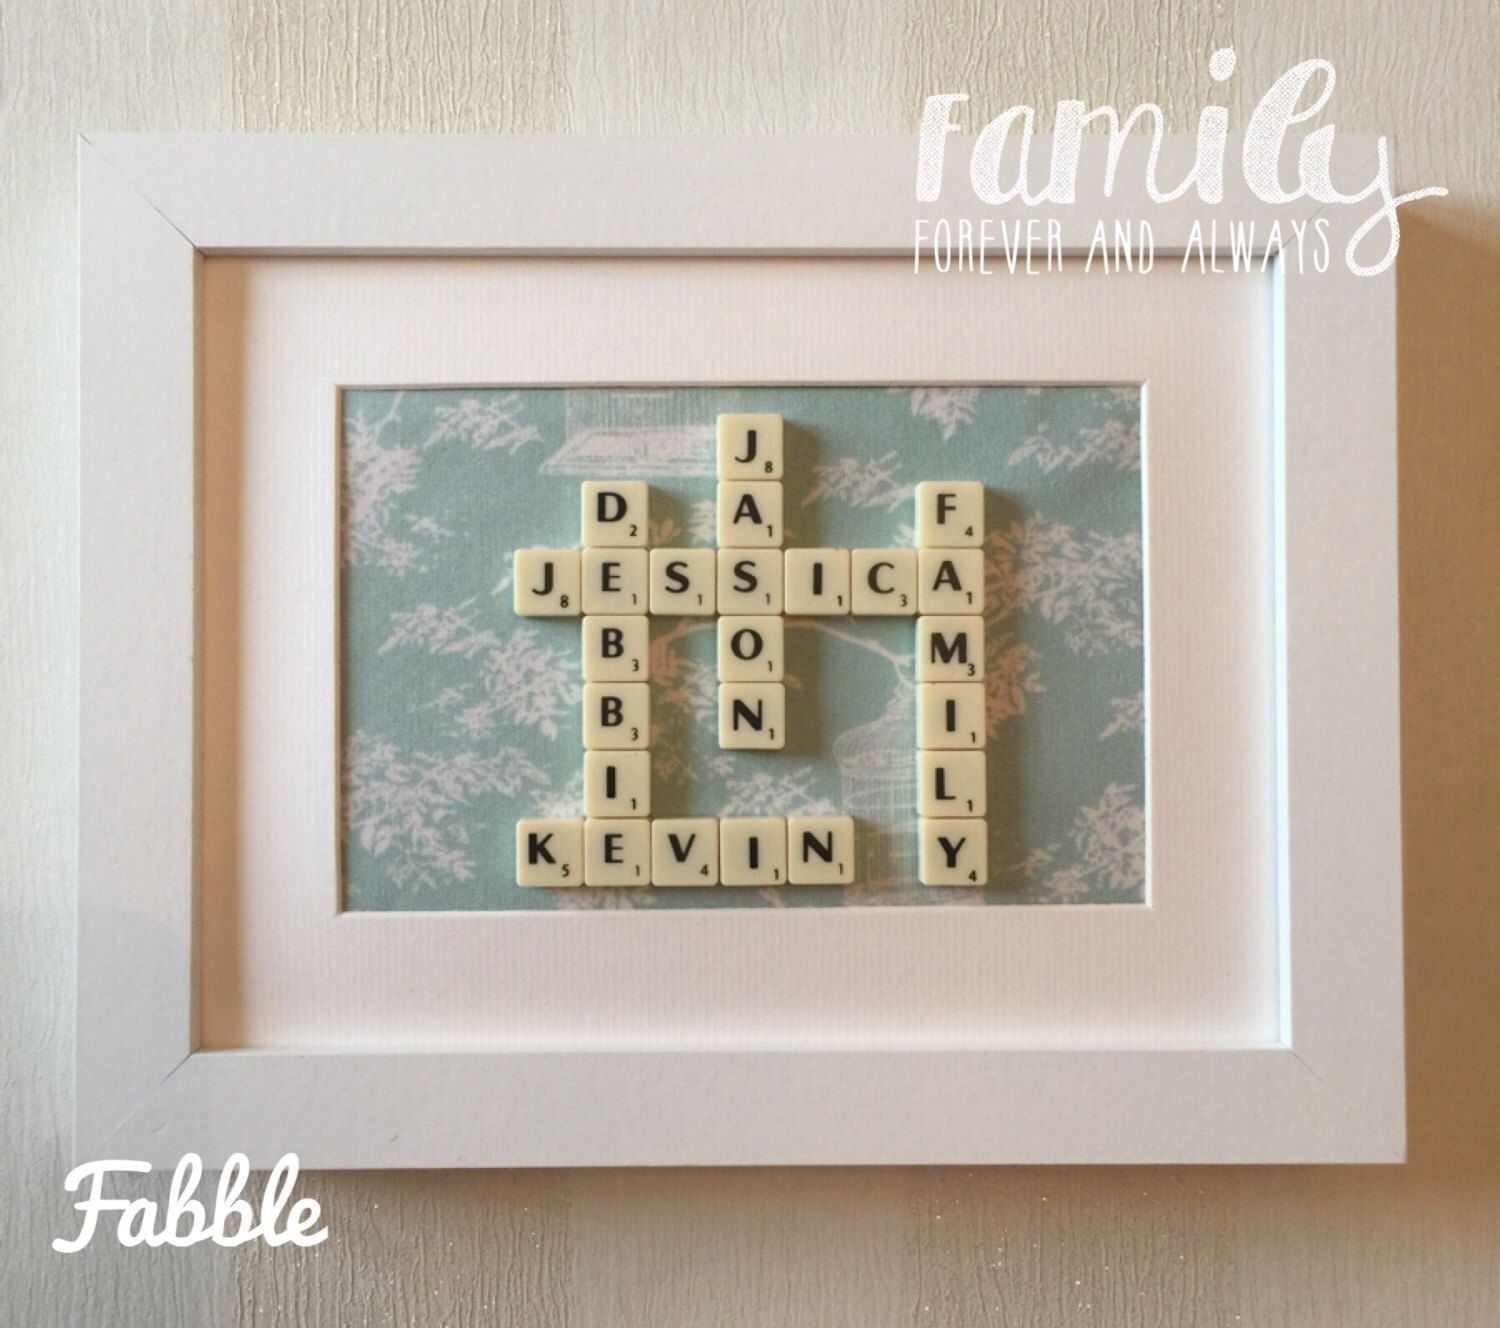 Scrabble Tile Wall Decor – Scrabble Tile Wall Decor Gift For Latest Personalized Fabric Wall Art (View 4 of 15)